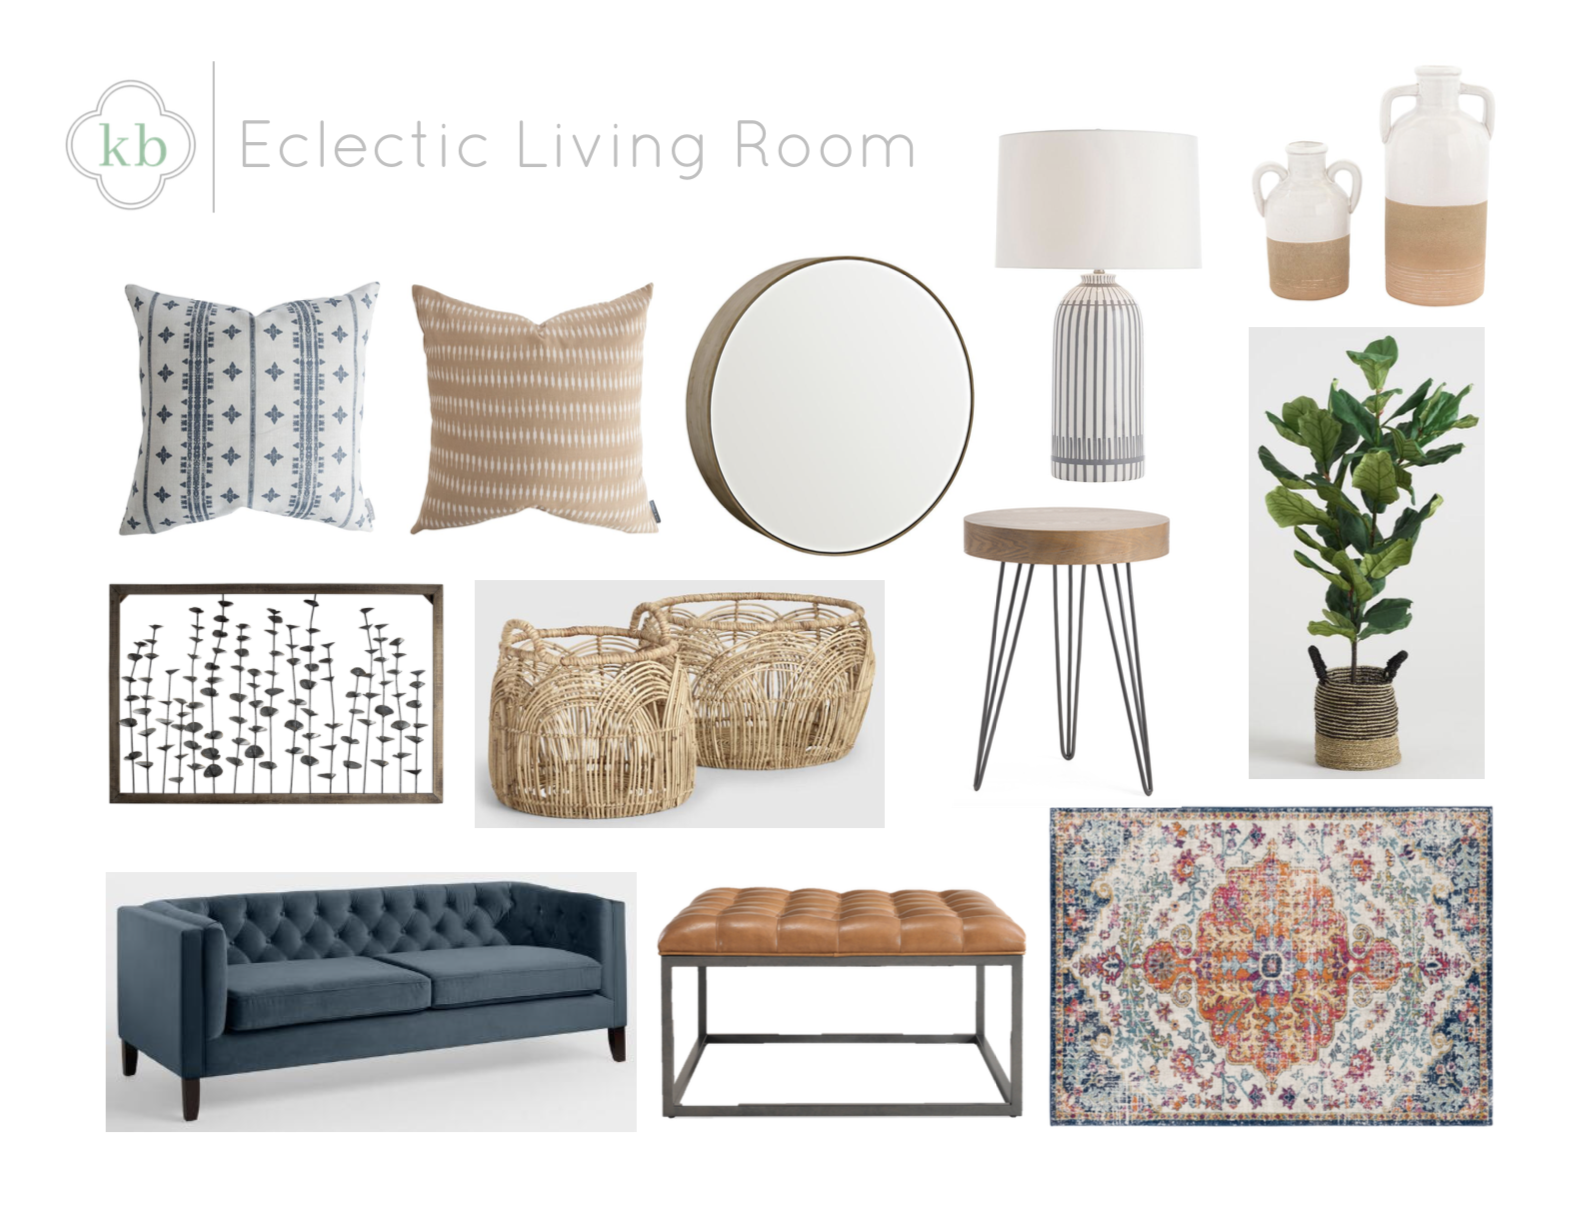 Eclectic Living Room - Kate Brock Interiors eDesign